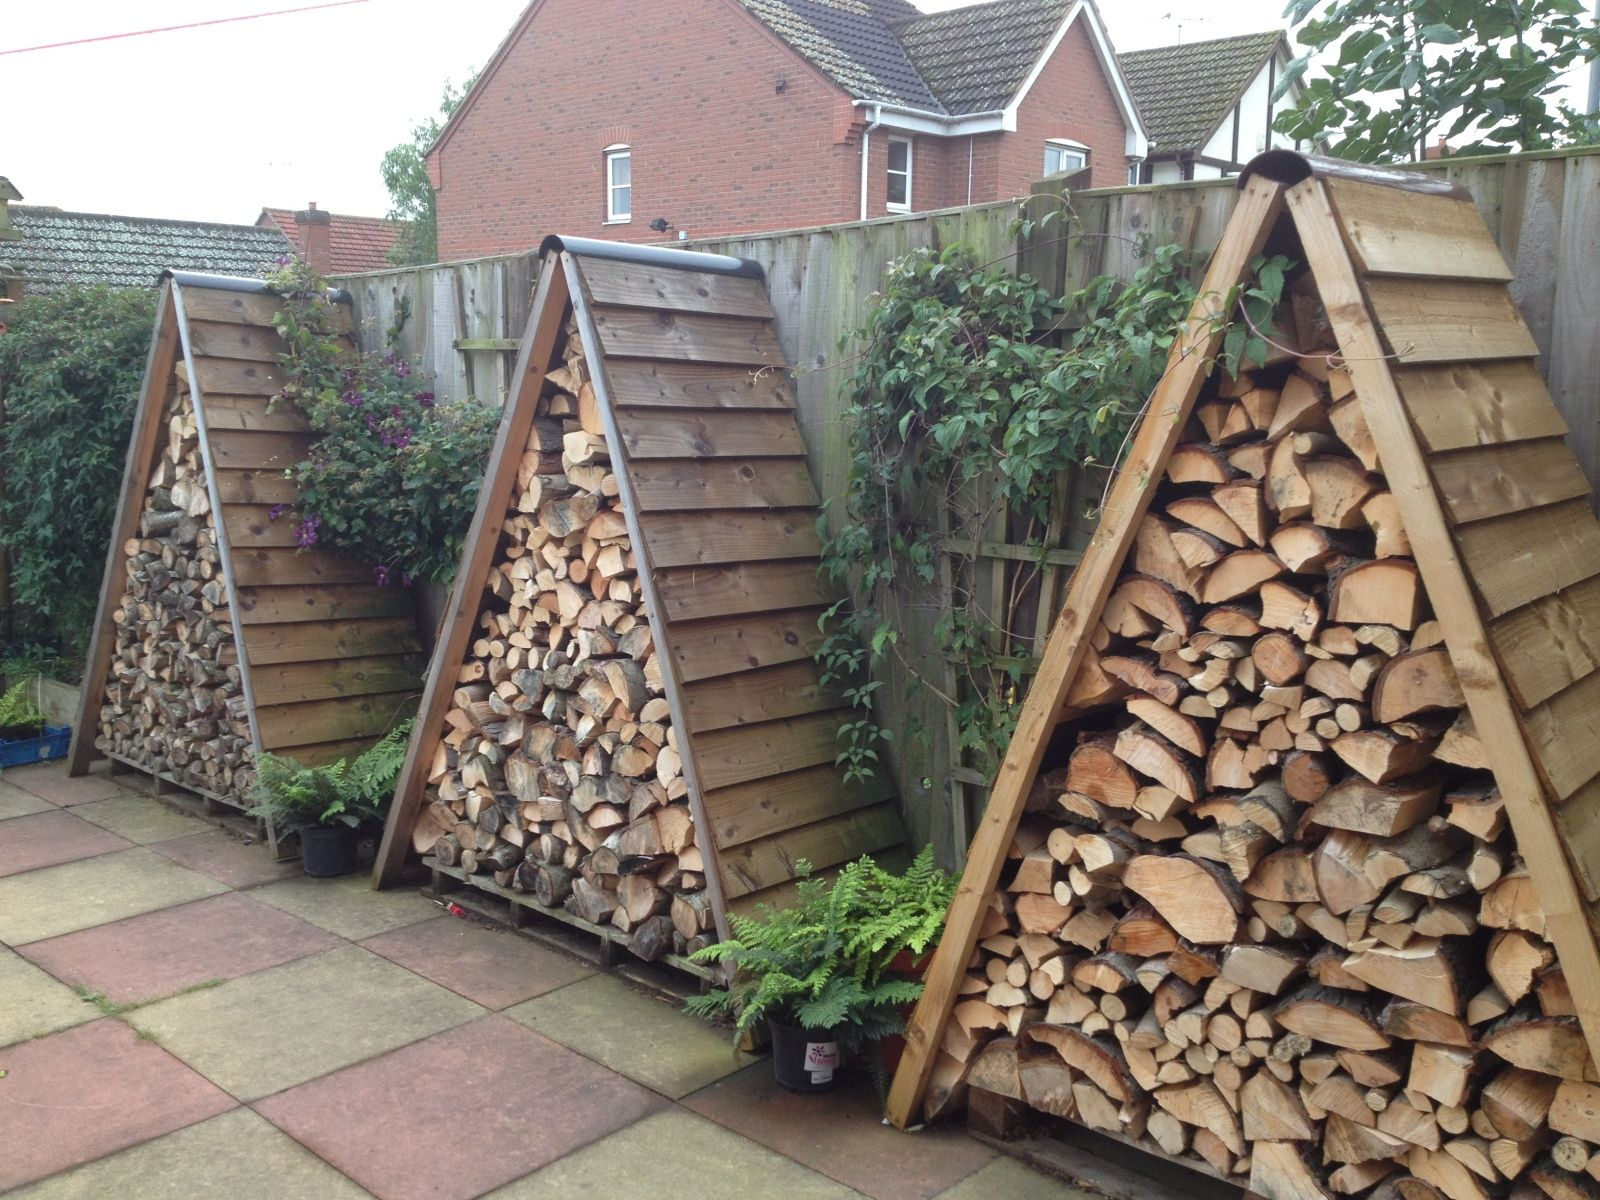 Best 25+ Wood shed ideas on Pinterest | Shed store ideas, Firewood ...